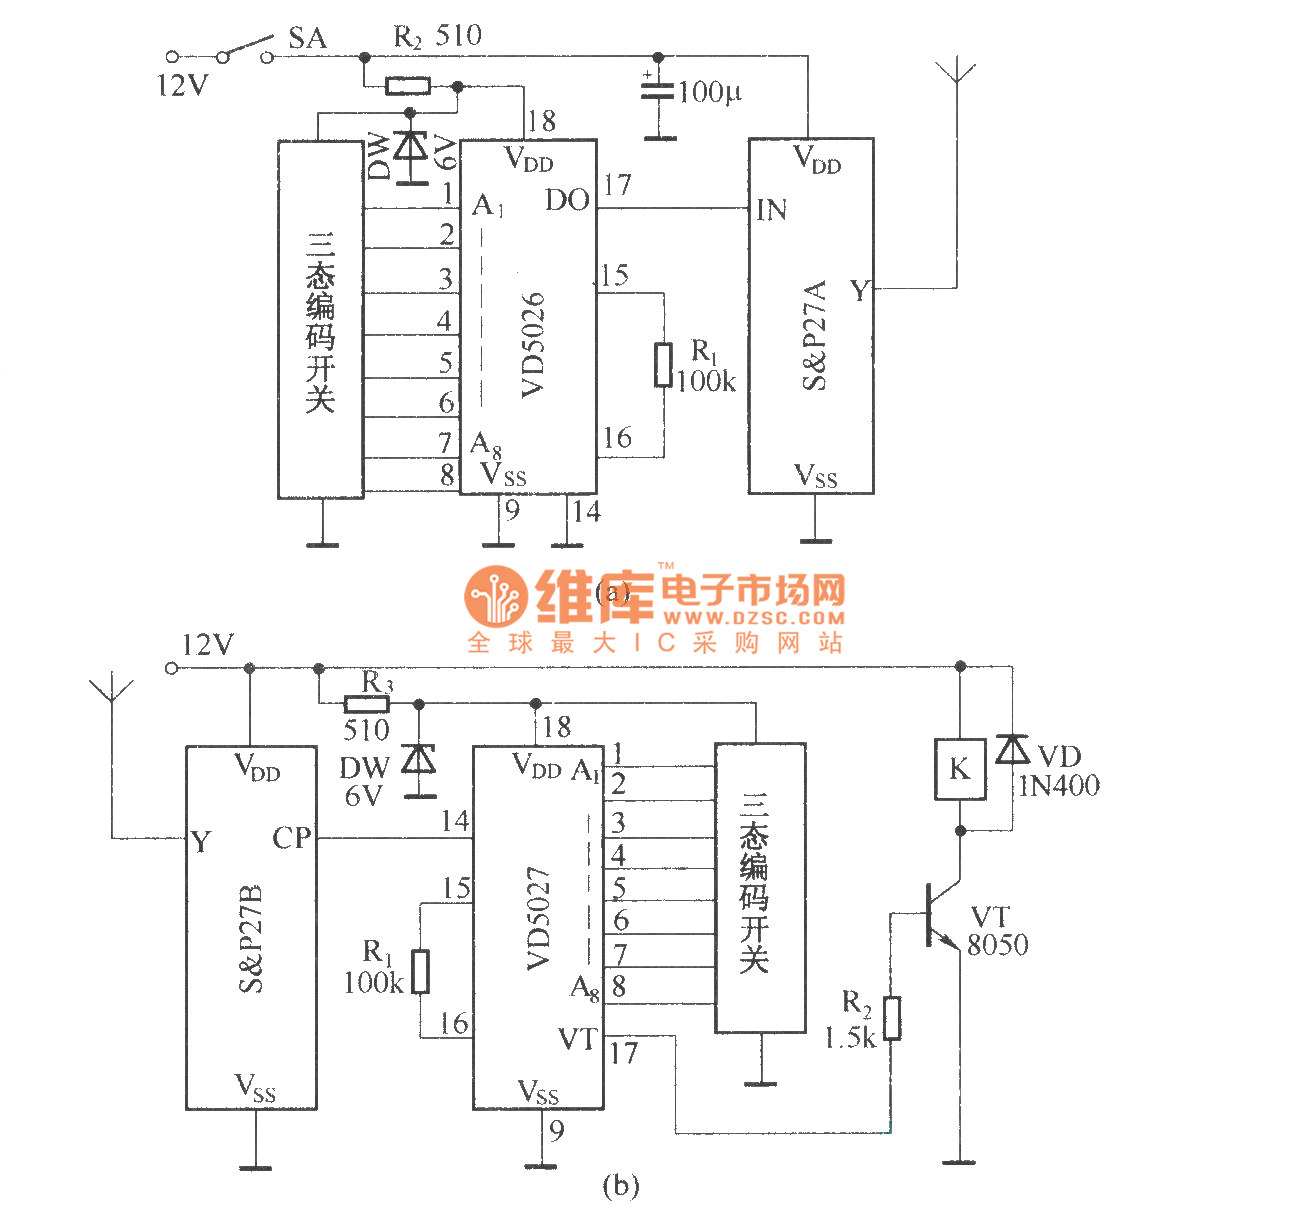 Composed Of Sp27asp278 Long Distance Remote Control Switch Heartratemonitor Controlcircuit Circuit Diagram Seekic